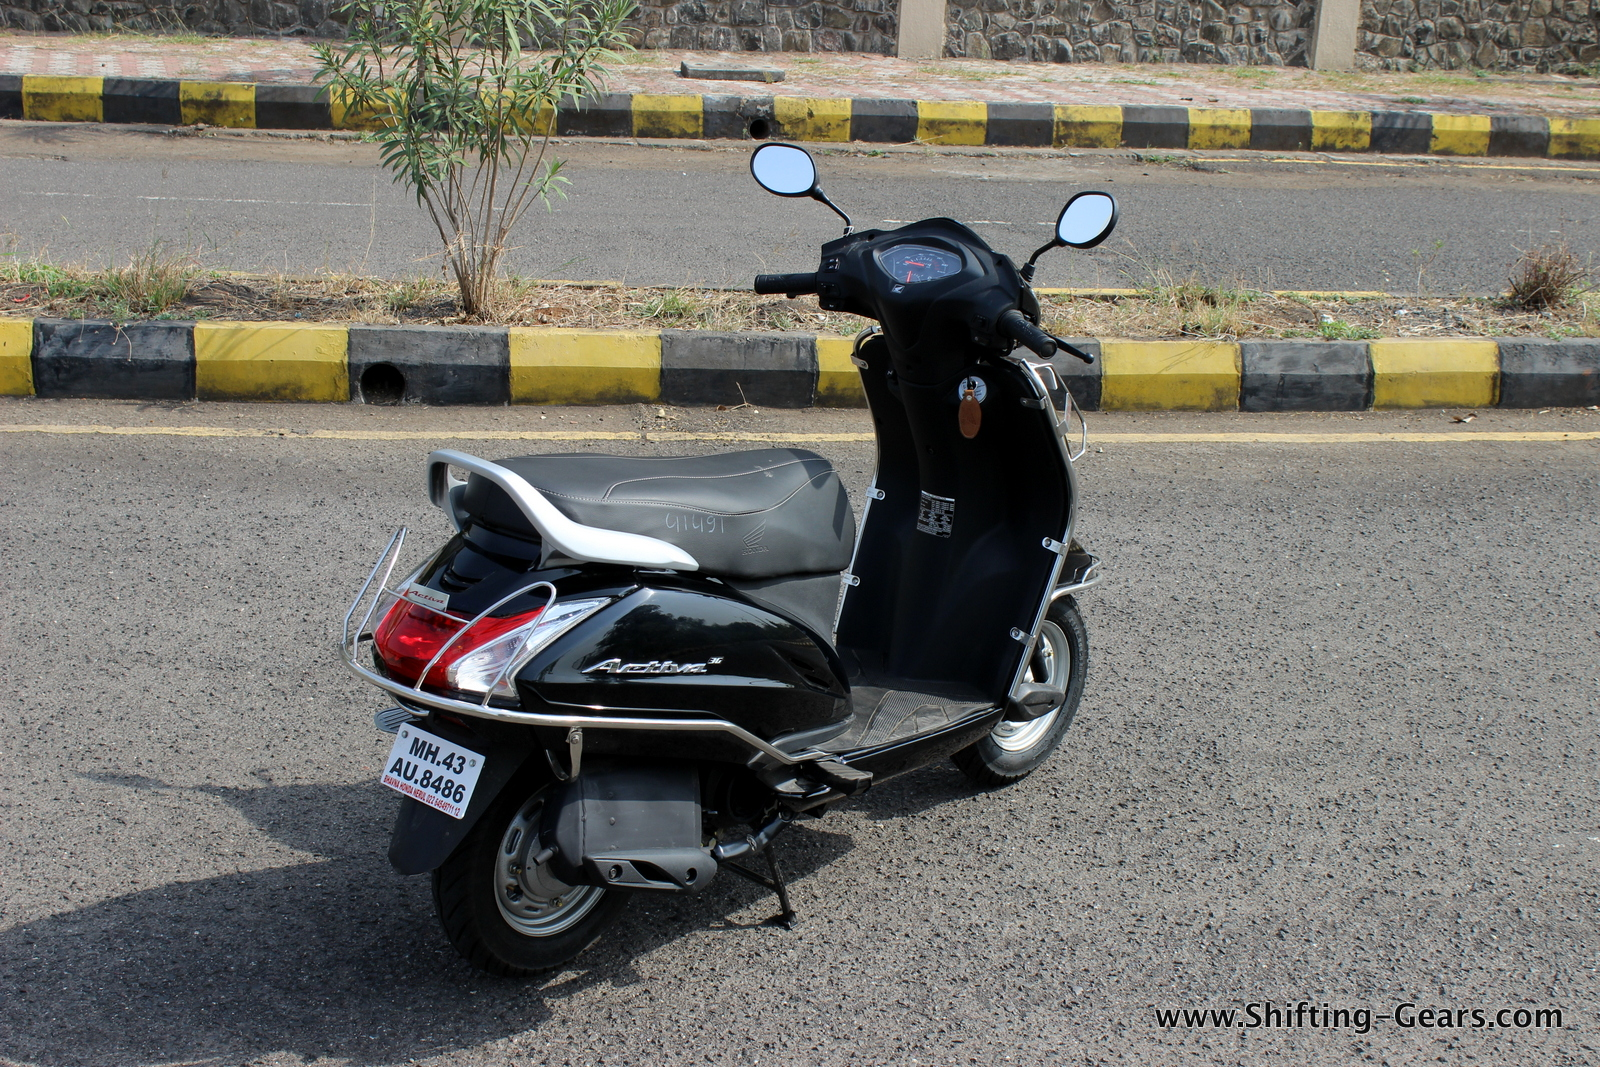 hmsi-honda-activa-3g-scooter-review-06